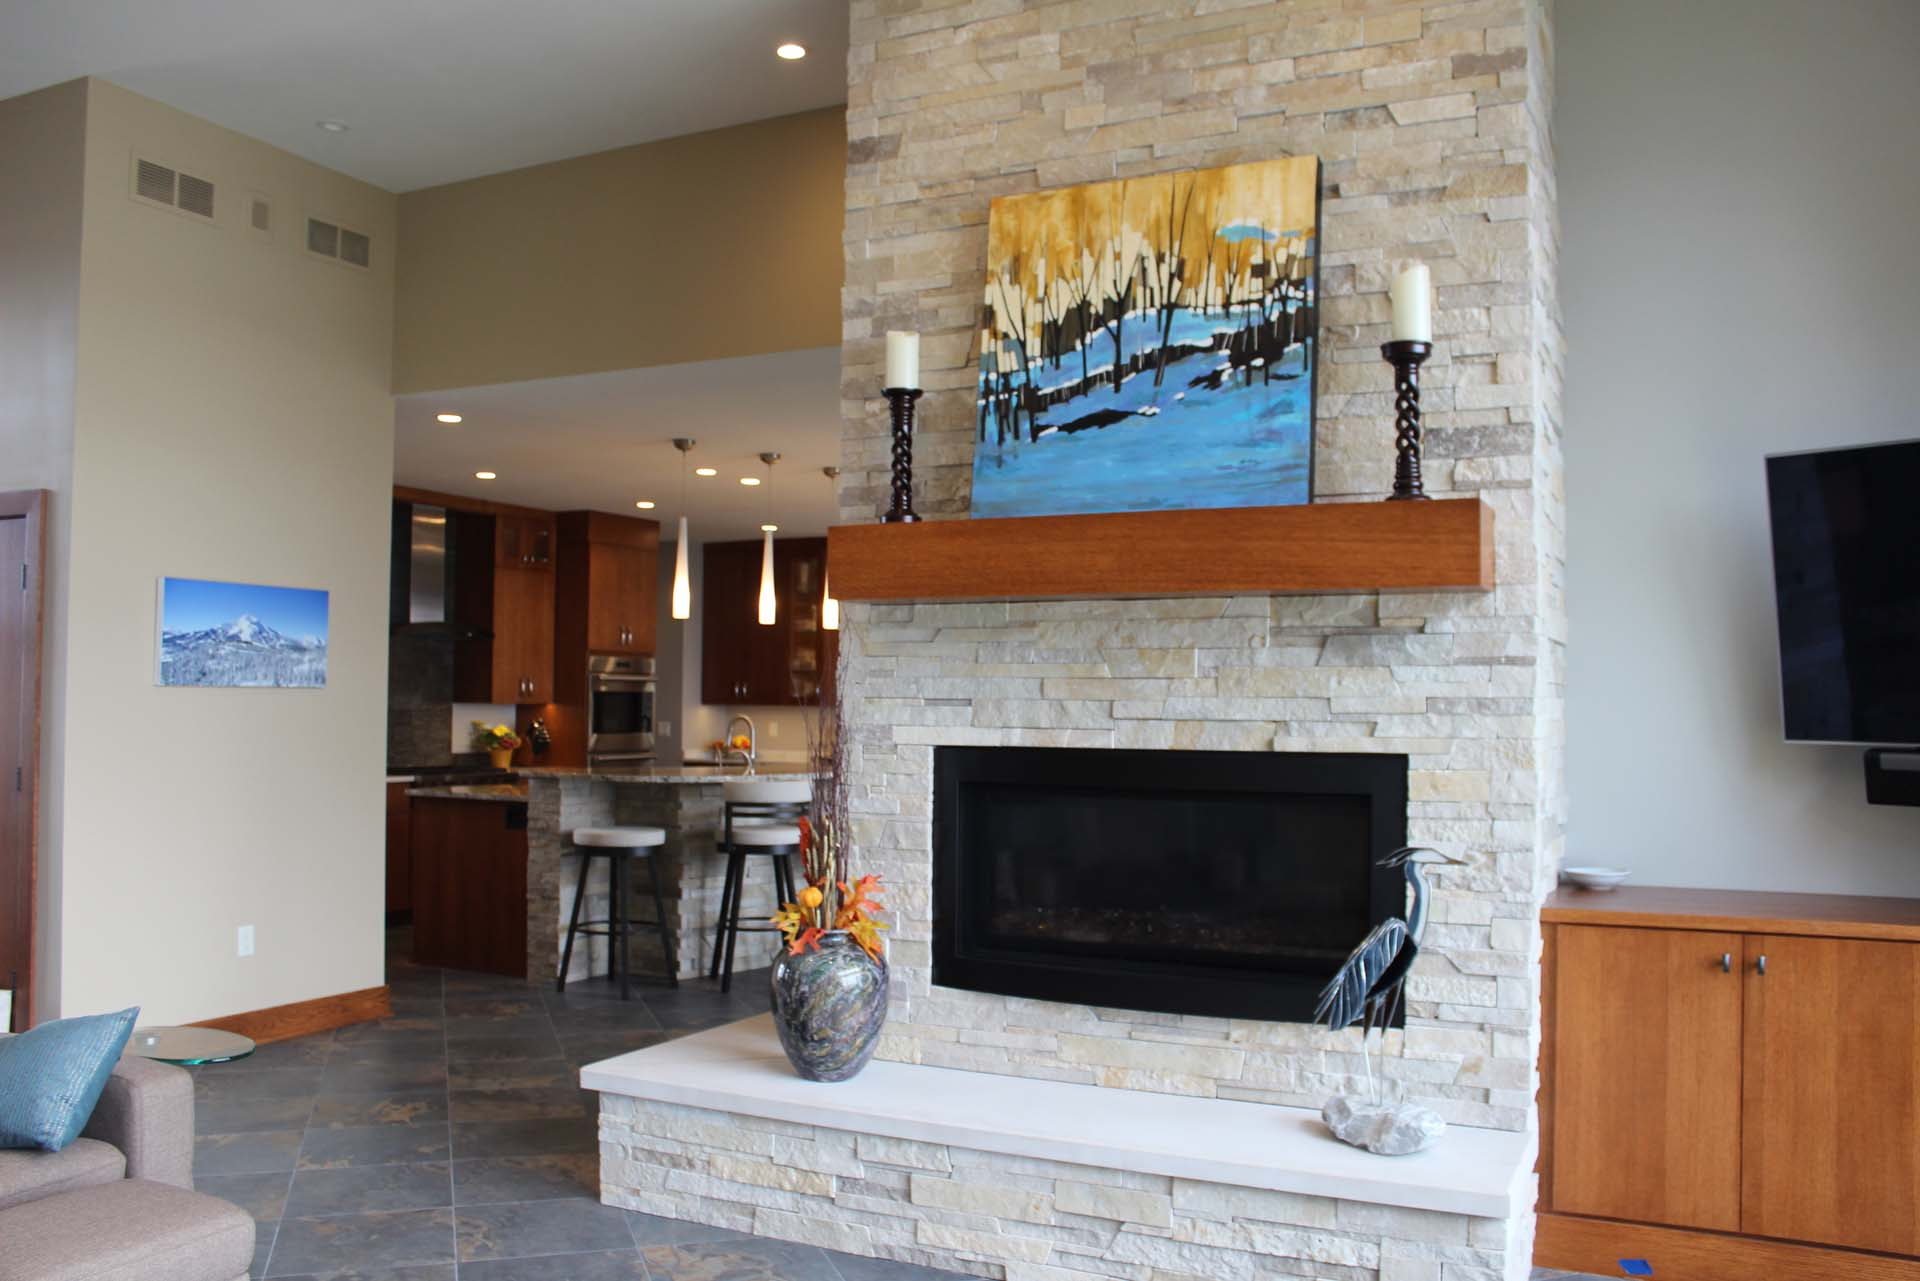 RMH_Golden_Lake_Contemporary_Living2.jpg